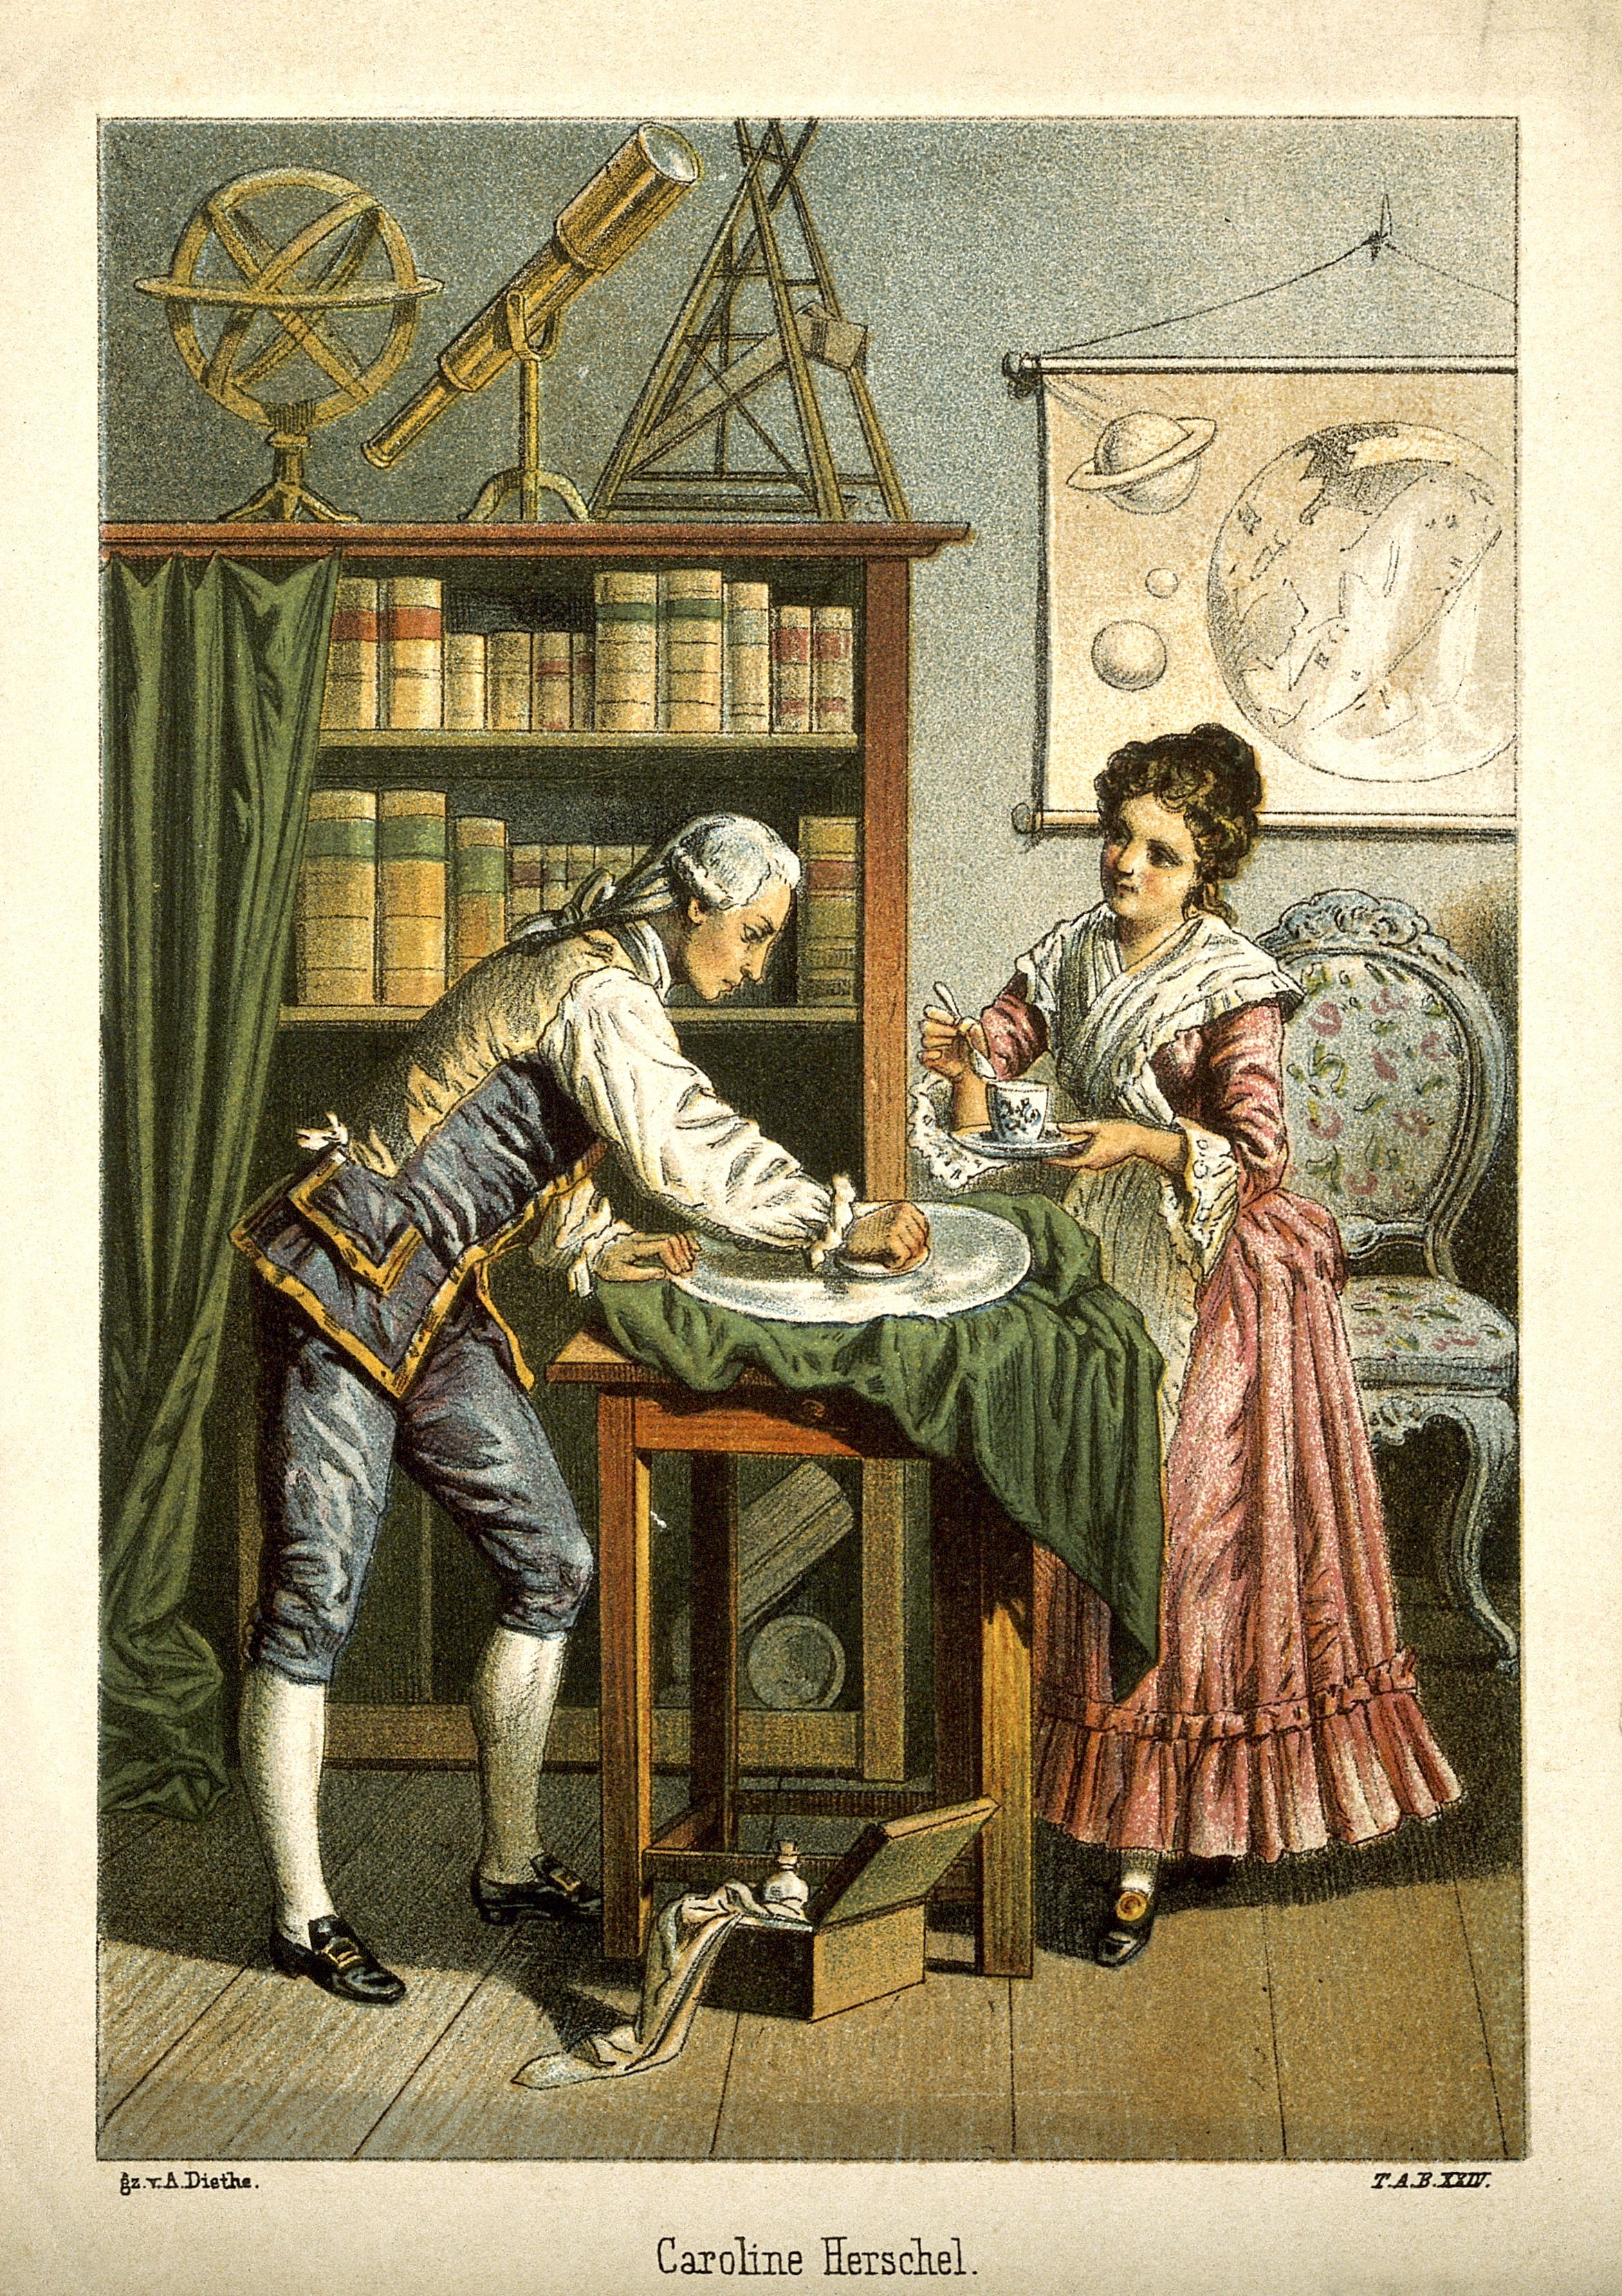 V0002731 Sir William Herschel and Caroline Herschel. Coloured lithogr Credit: Wellcome Library, London. Wellcome Images images@wellcome.ac.uk http://wellcomeimages.org Sir William Herschel and Caroline Herschel. Coloured lithograph by A. Diethe. Published: - Copyrighted work available under Creative Commons Attribution only licence CC BY 4.0 http://creativecommons.org/licenses/by/4.0/